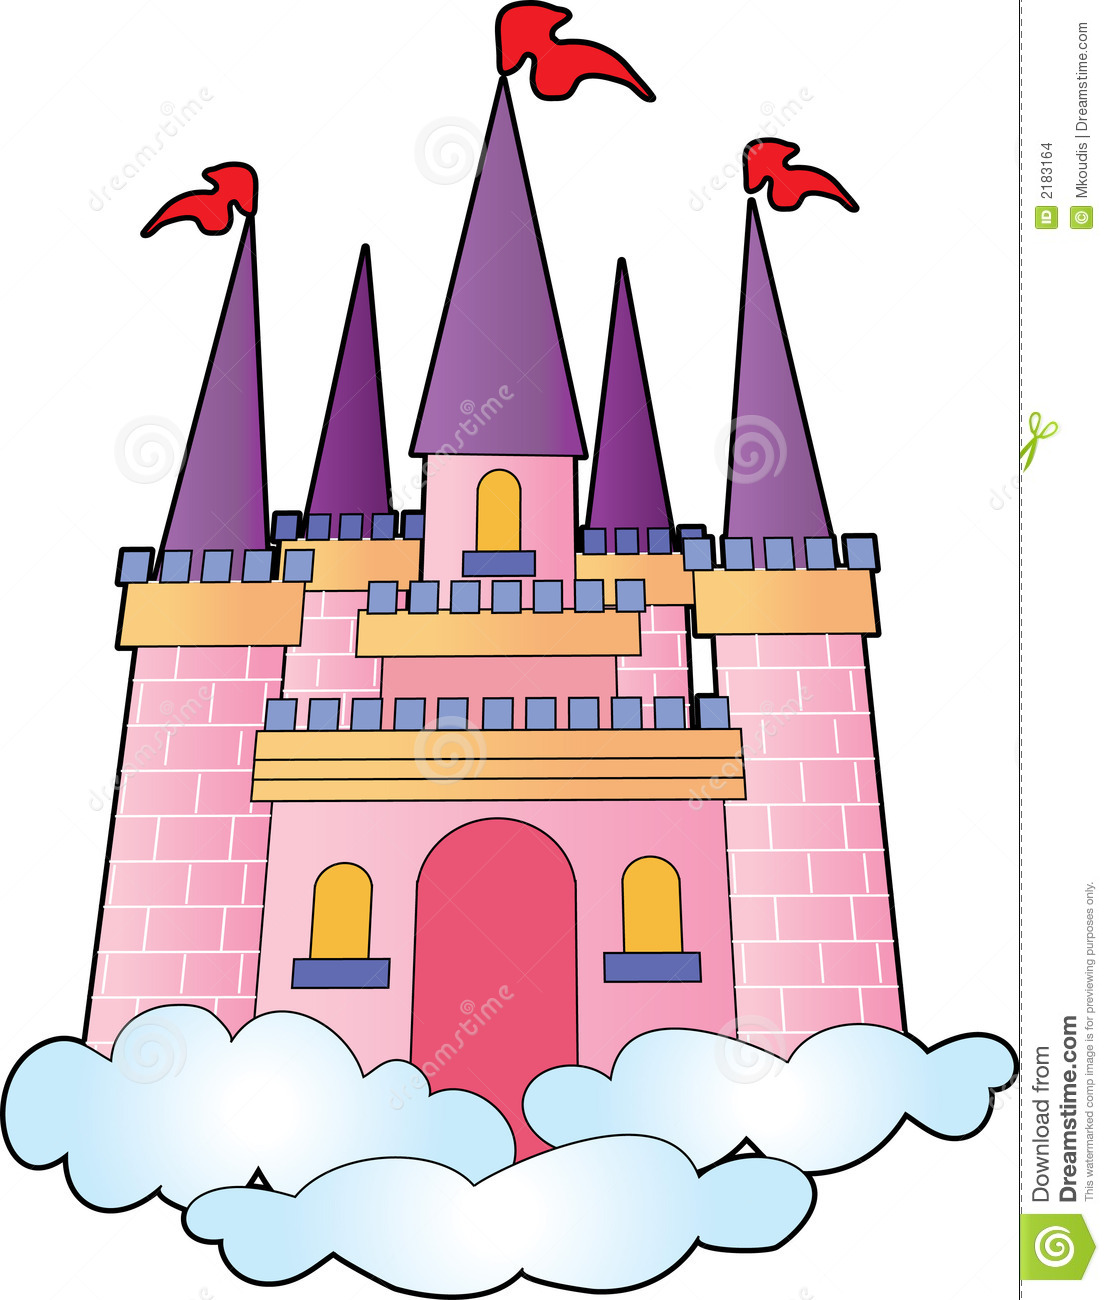 cinderella free clipart at getdrawings com free for personal use